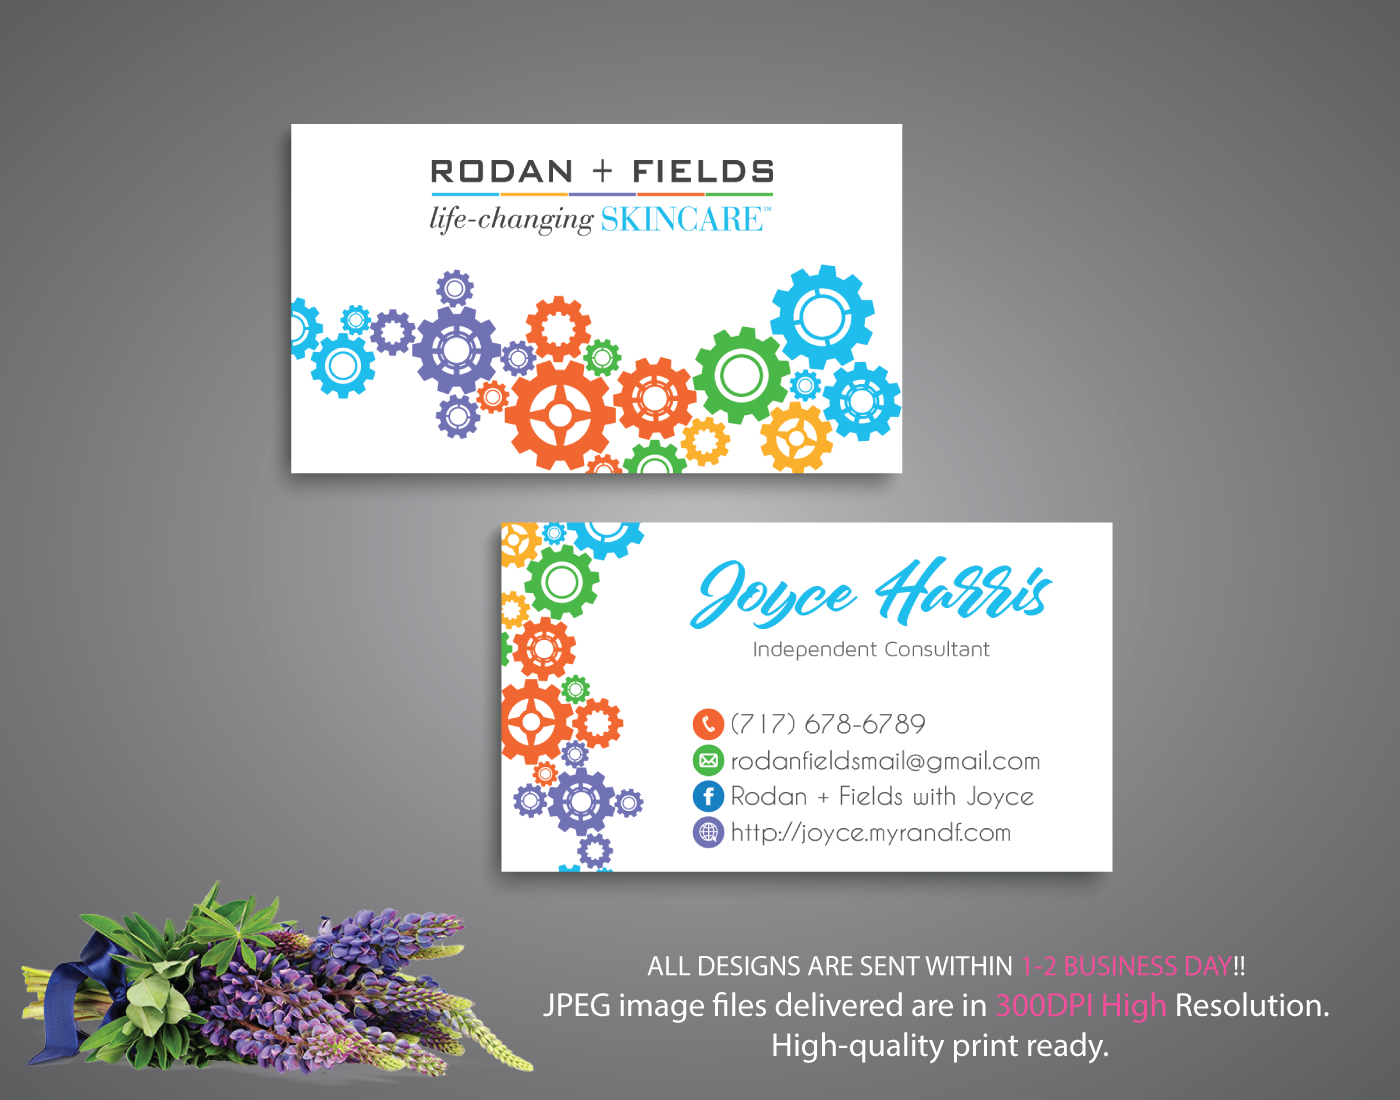 Rodan And Fields Business Cards, Rodan And Fields Digital Files, Rodan +  Fields Printable Card, R And F Marketing Cards, Rf07 Soldelisazone Intended For Rodan And Fields Business Card Template